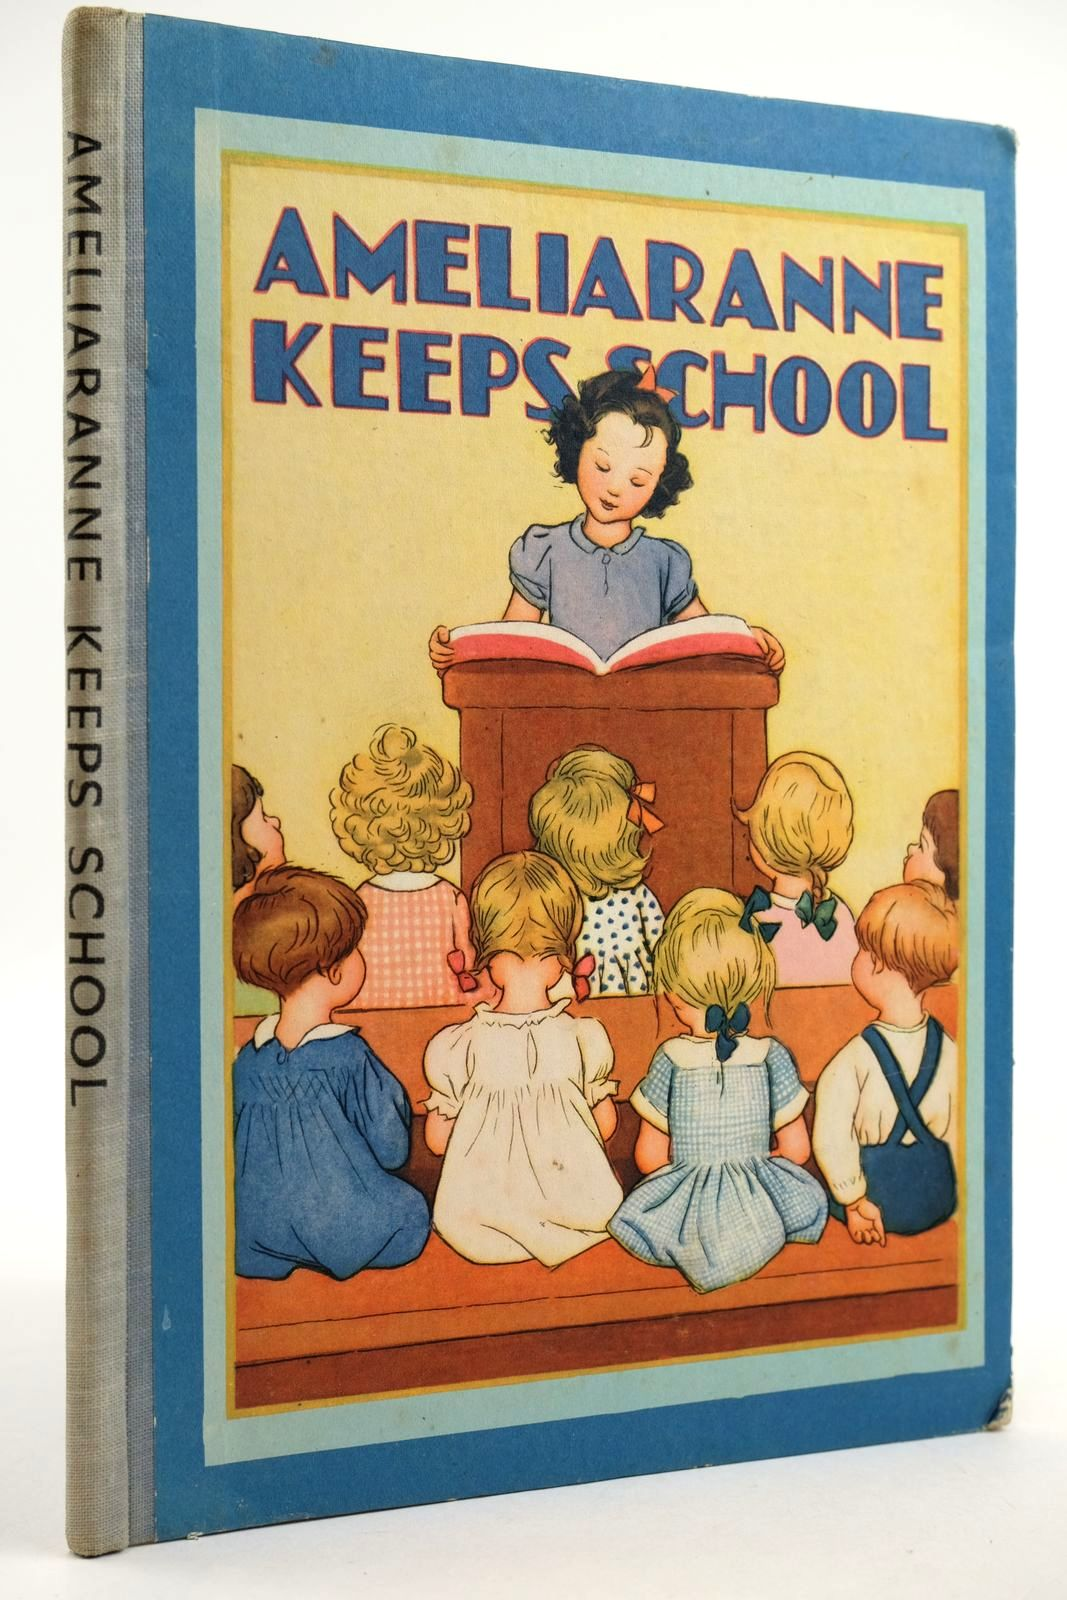 Photo of AMELIARANNE KEEPS SCHOOL written by Heward, Constance illustrated by Pearse, S.B. published by George G. Harrap & Co. Ltd. (STOCK CODE: 2132406)  for sale by Stella & Rose's Books